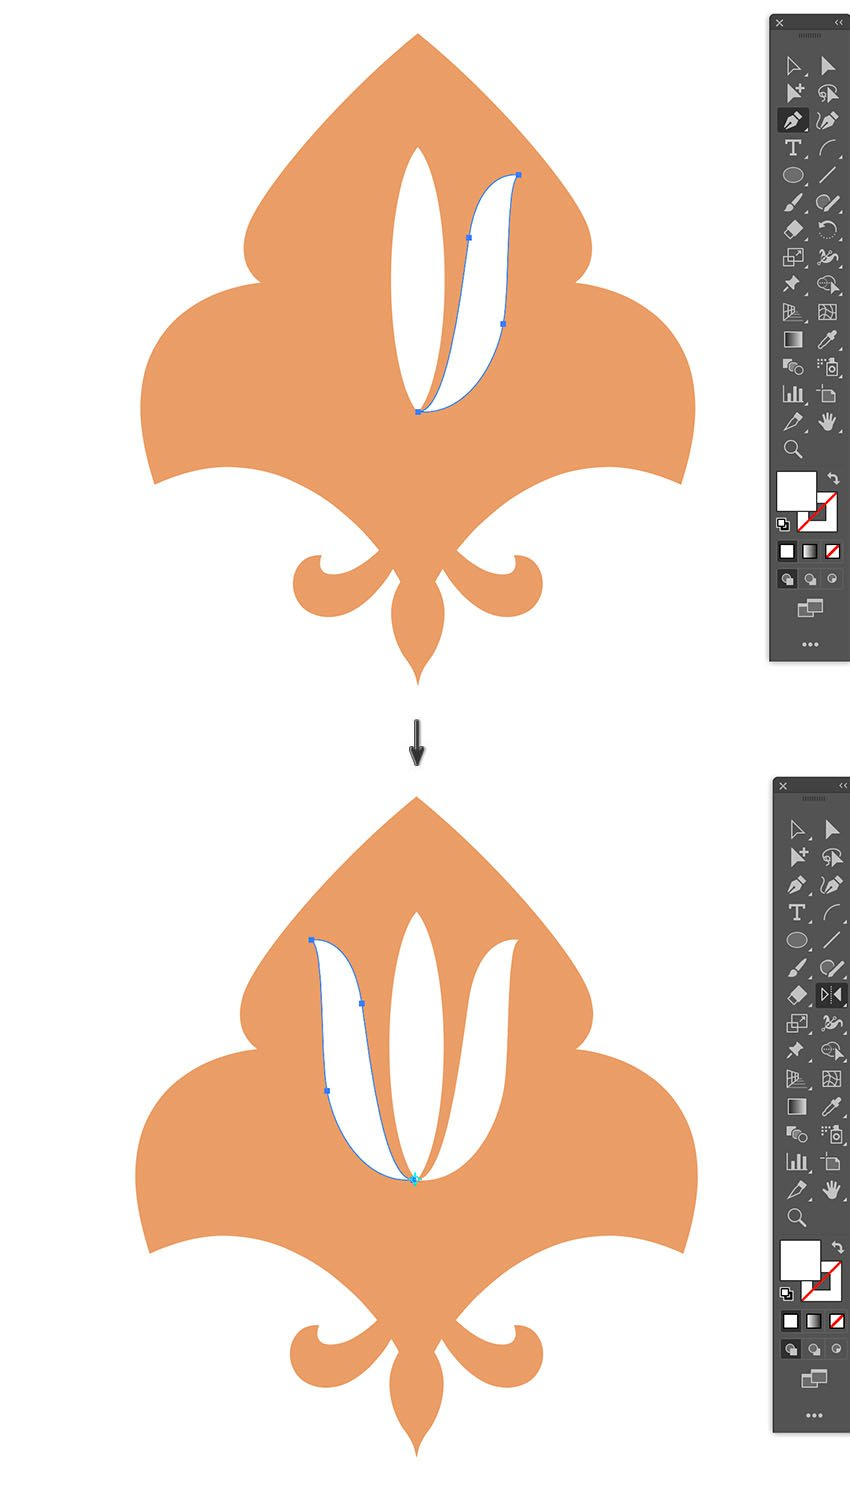 use pen tool to create petals and mirror using reflect ool option shift drag